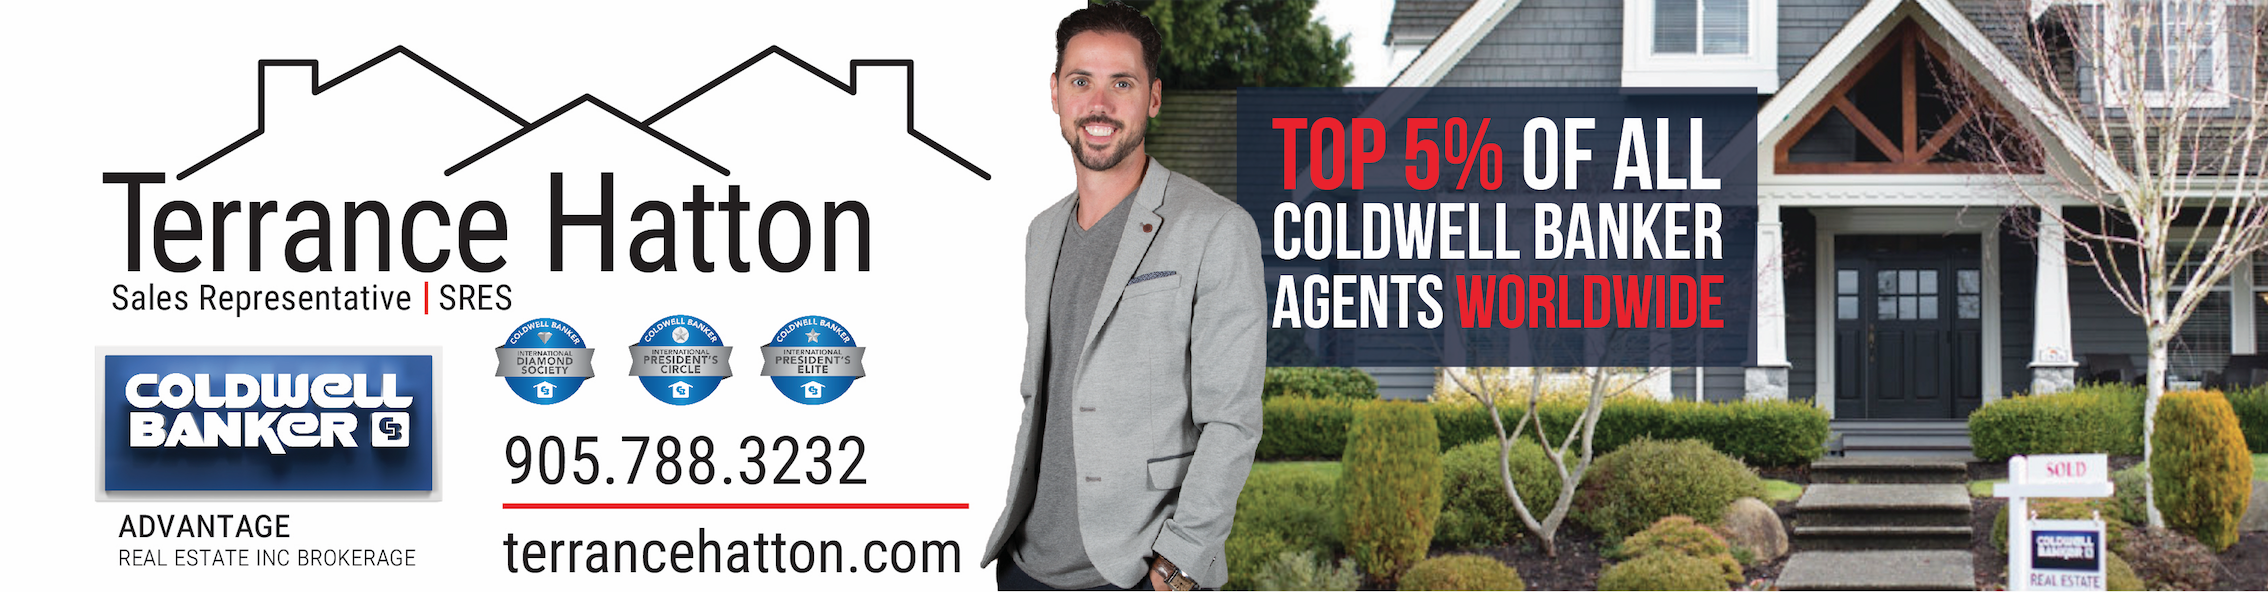 Terrance Hatton Coldwell Banker Advantage Real Estate Inc., Brokerage